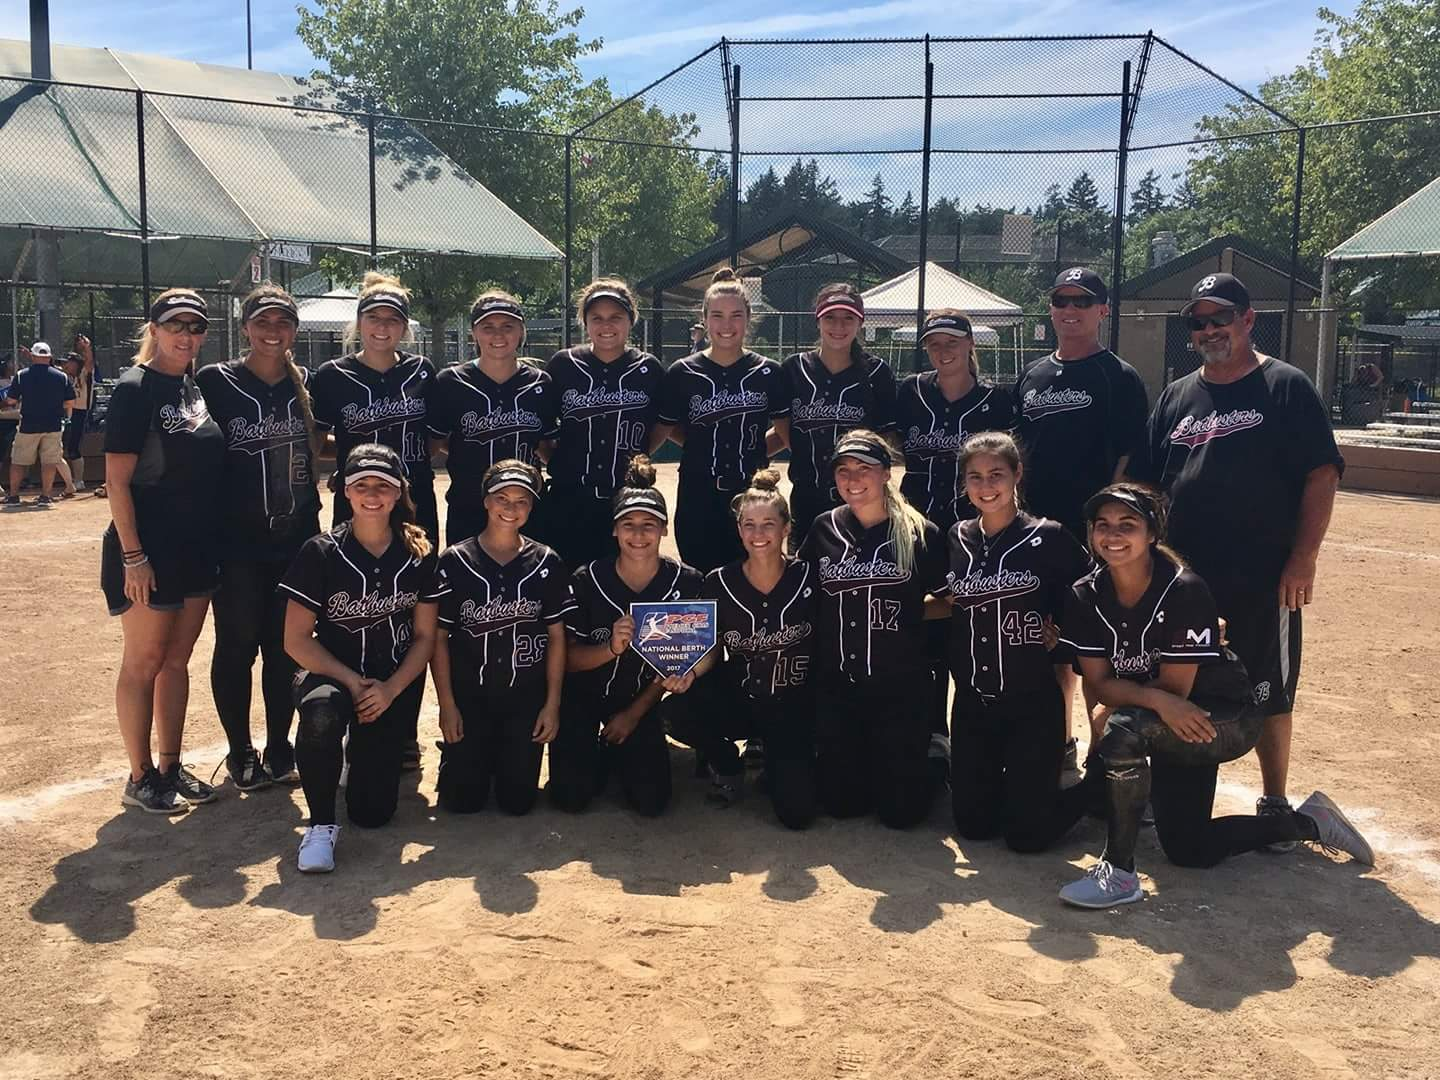 Congrats to Batbusters Clark for winning a PGF berth